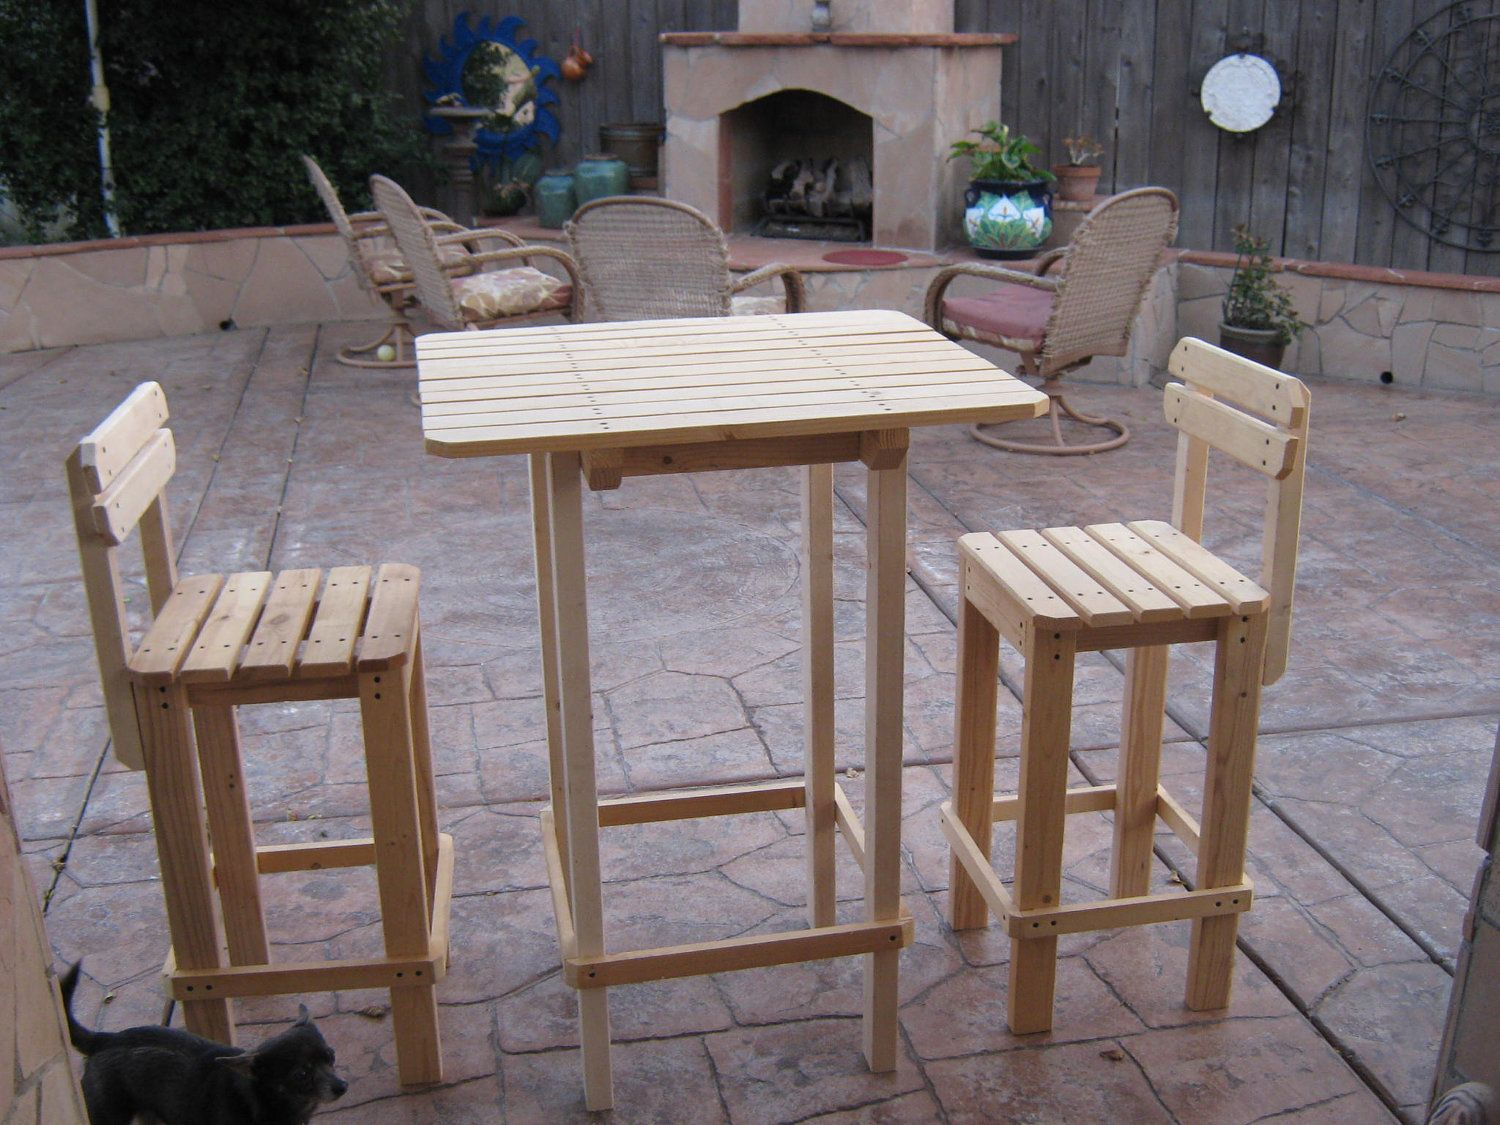 Diy Plans To Make Bar Table And Stool Set Outdoor Furniture